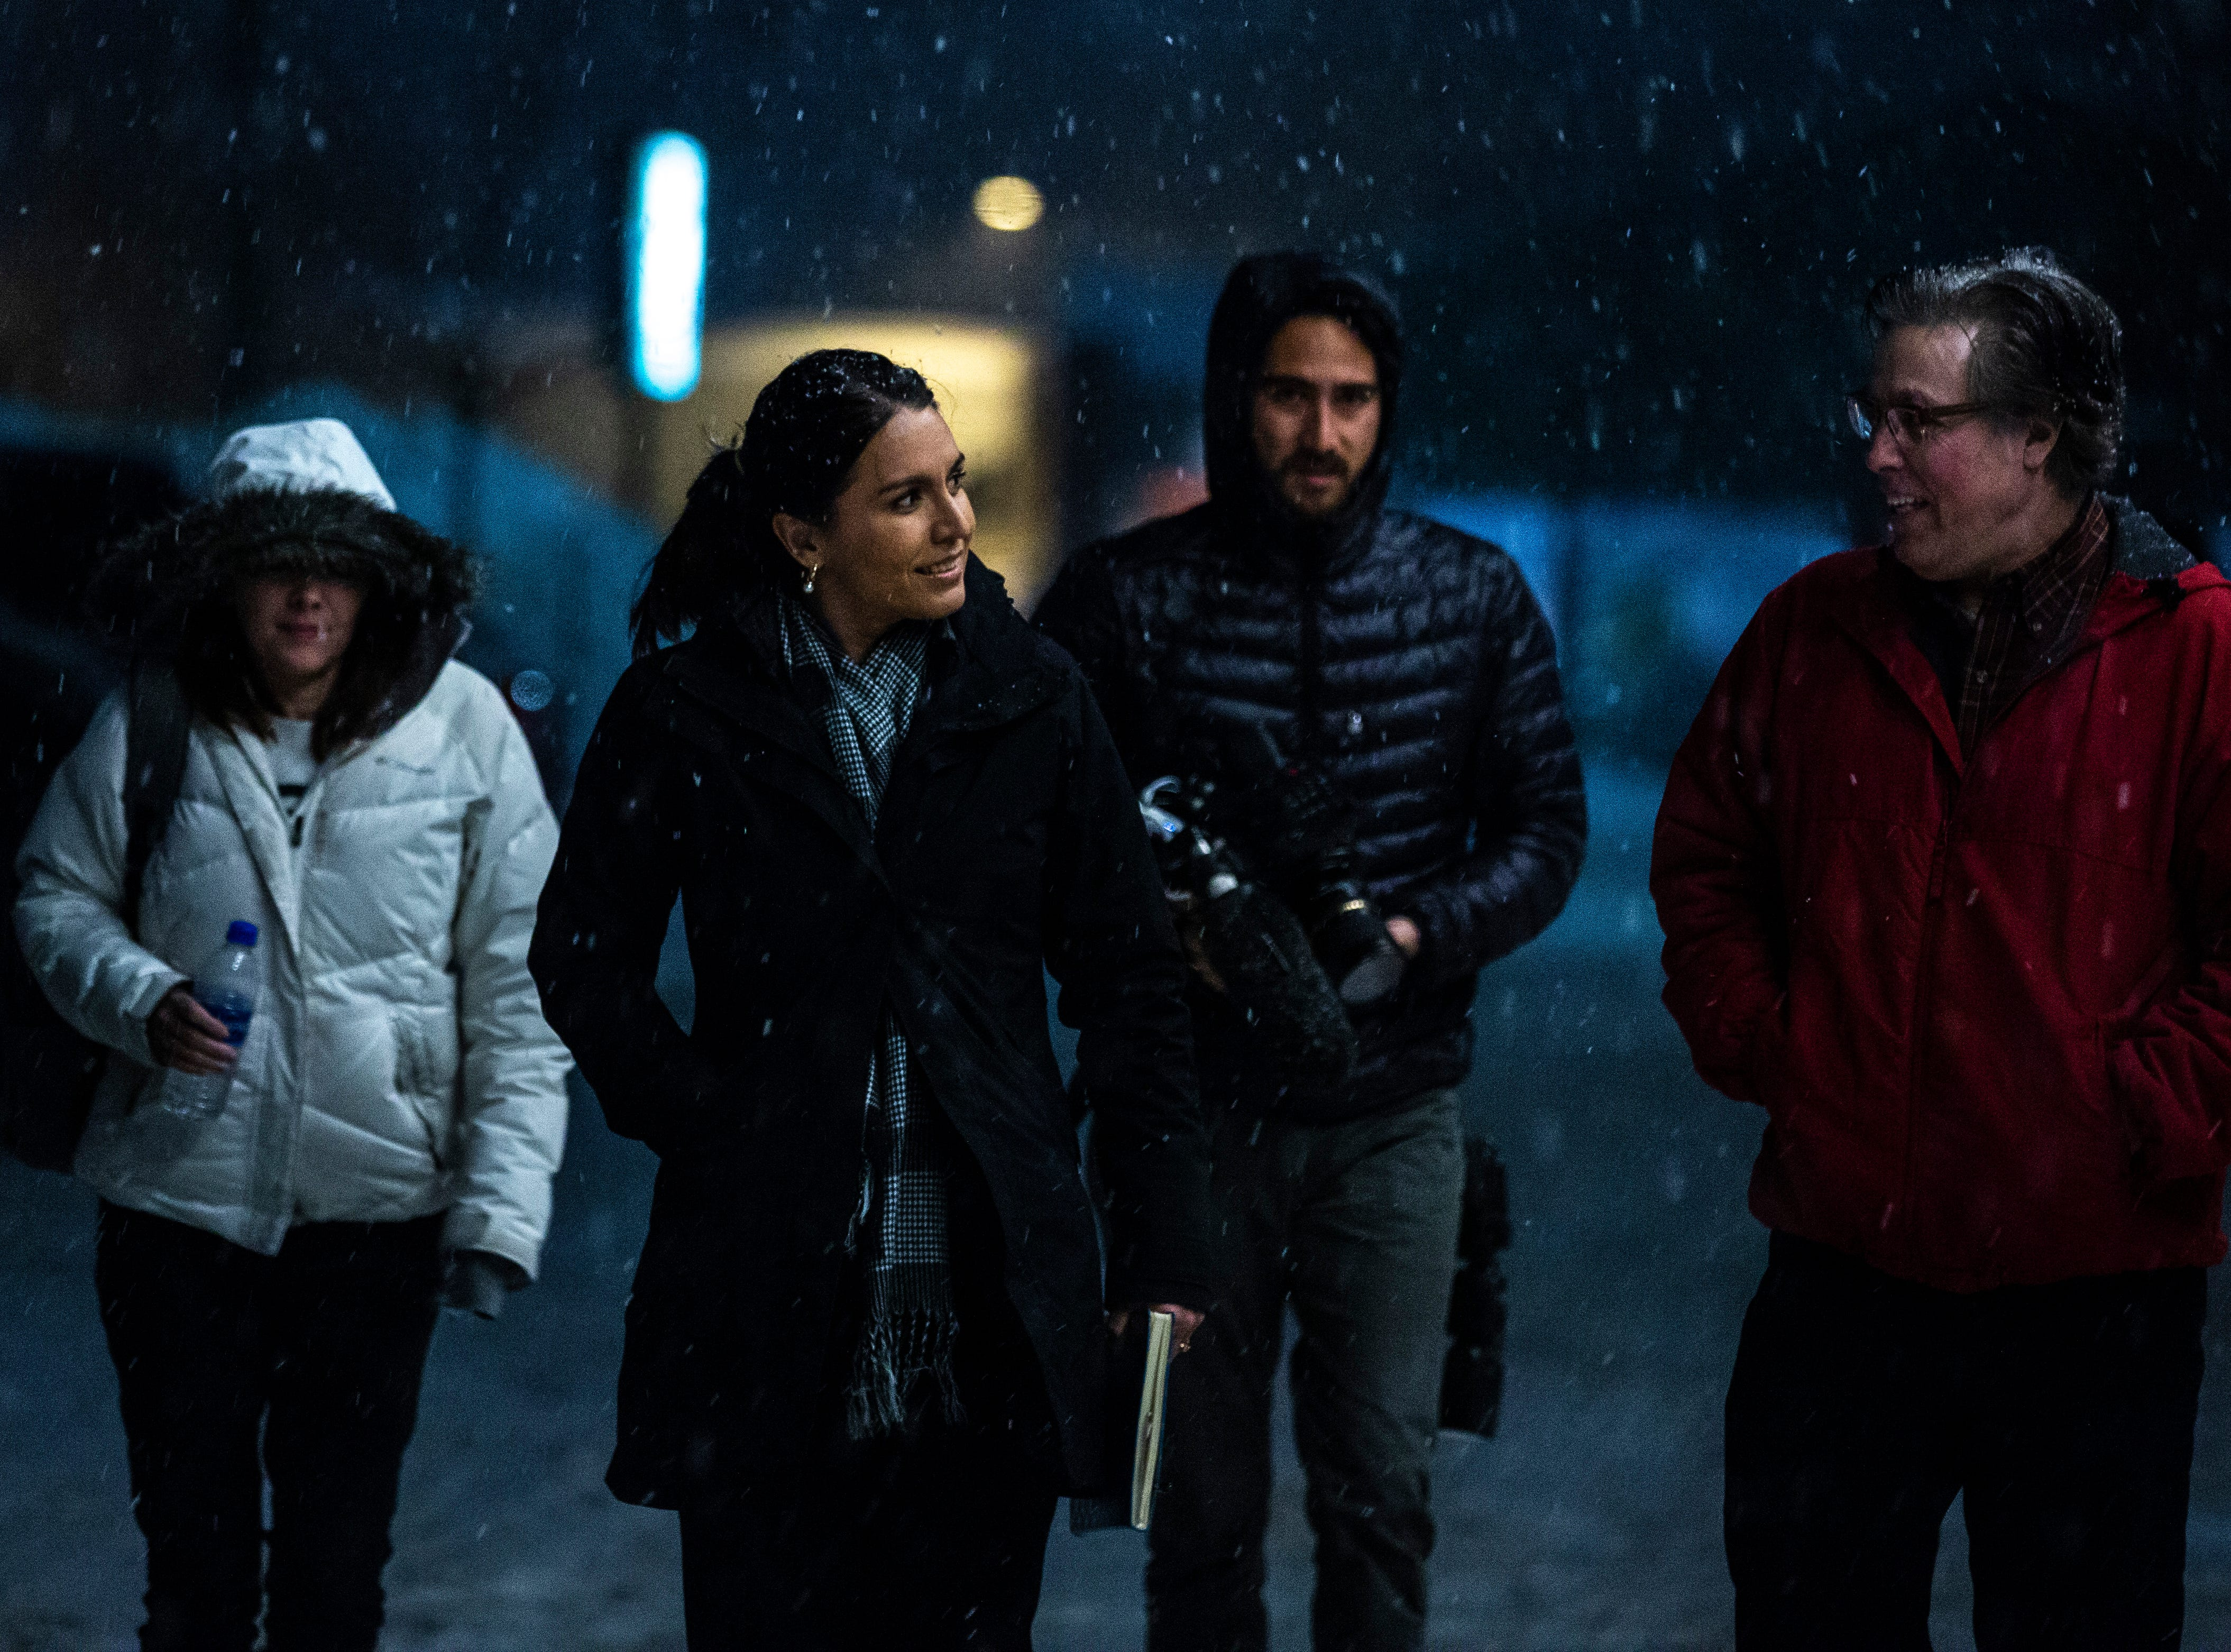 U.S. Rep. Tulsi Gabbard, D-Hawaii, arrives in the snow for an event on her first trip to Iowa since declaring her intent to run for president on Monday, Feb. 11, 2019 at Big Grove Brewery in Iowa City.